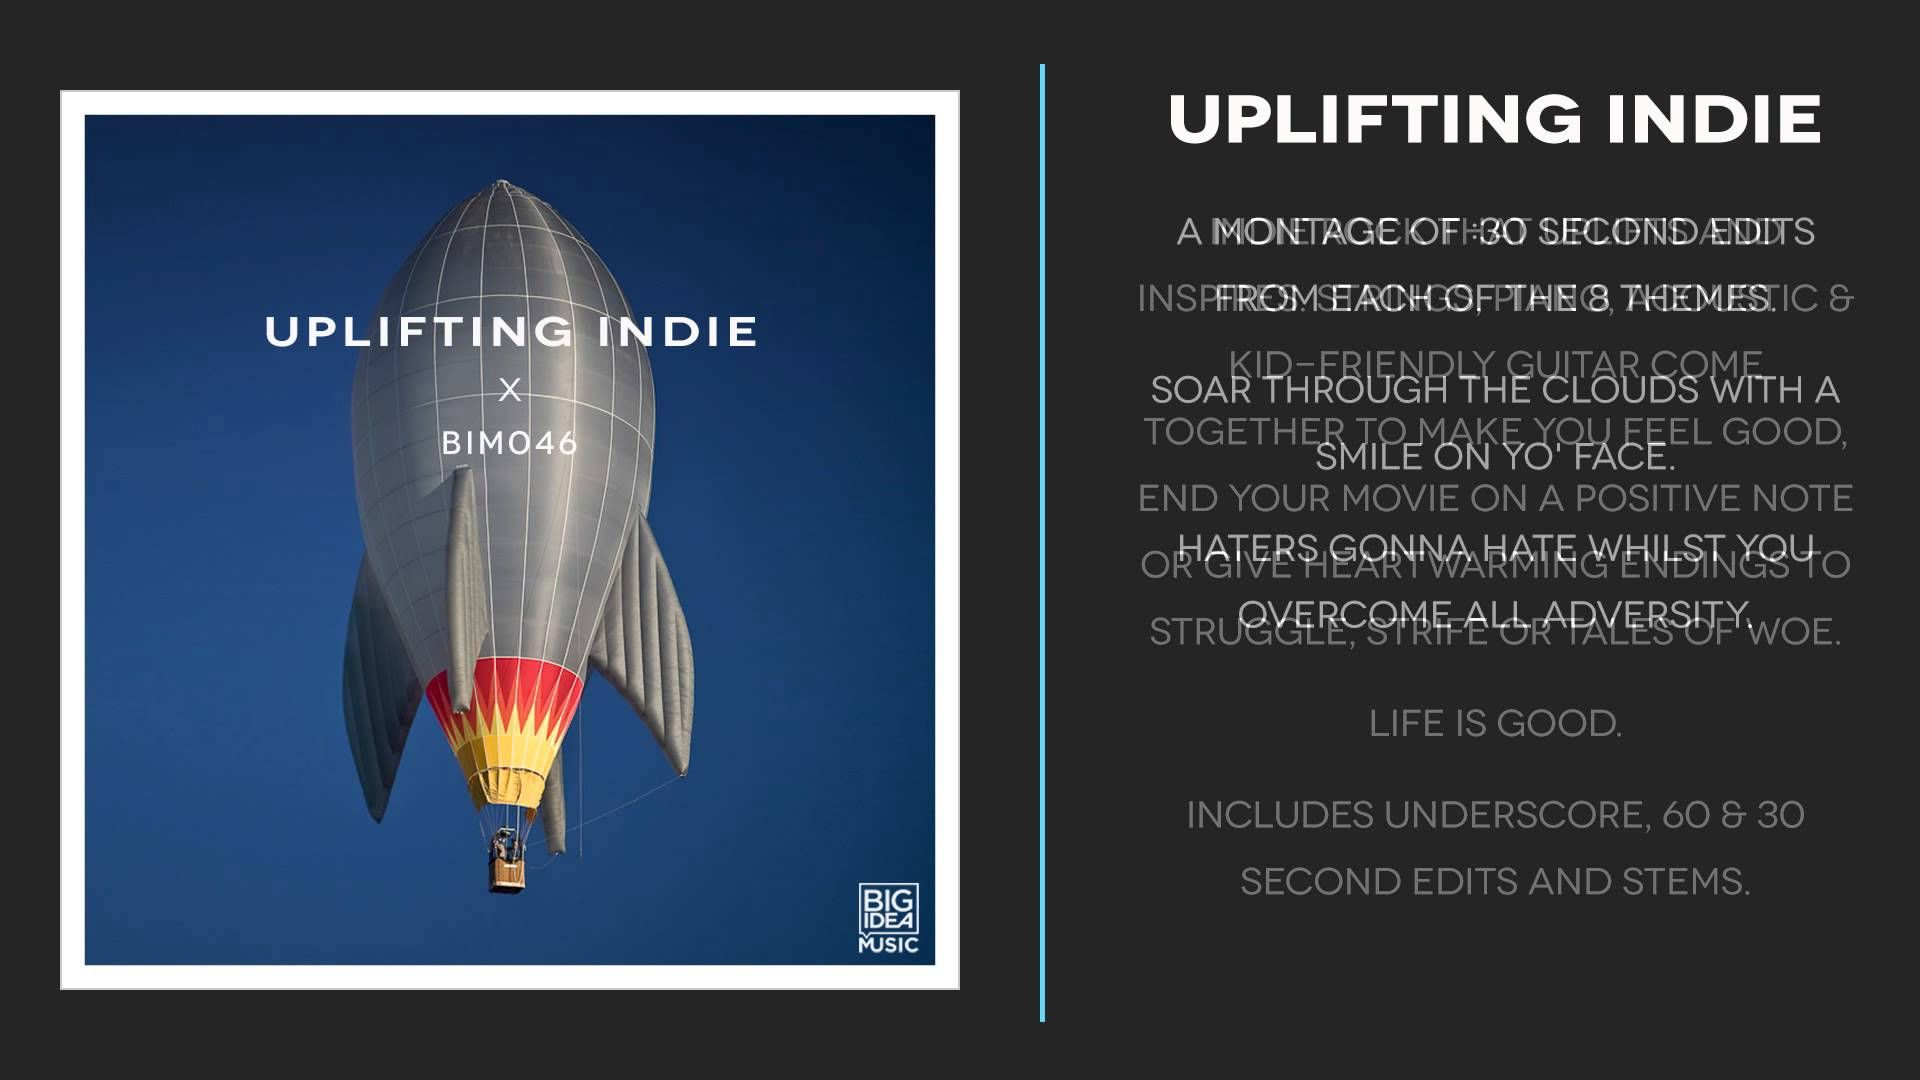 BIM046 UpliftingIndie  Great album, great catalog! http://www.milesofmusik.com/music-albums/600211-1 046 will be up soon in the coming days.